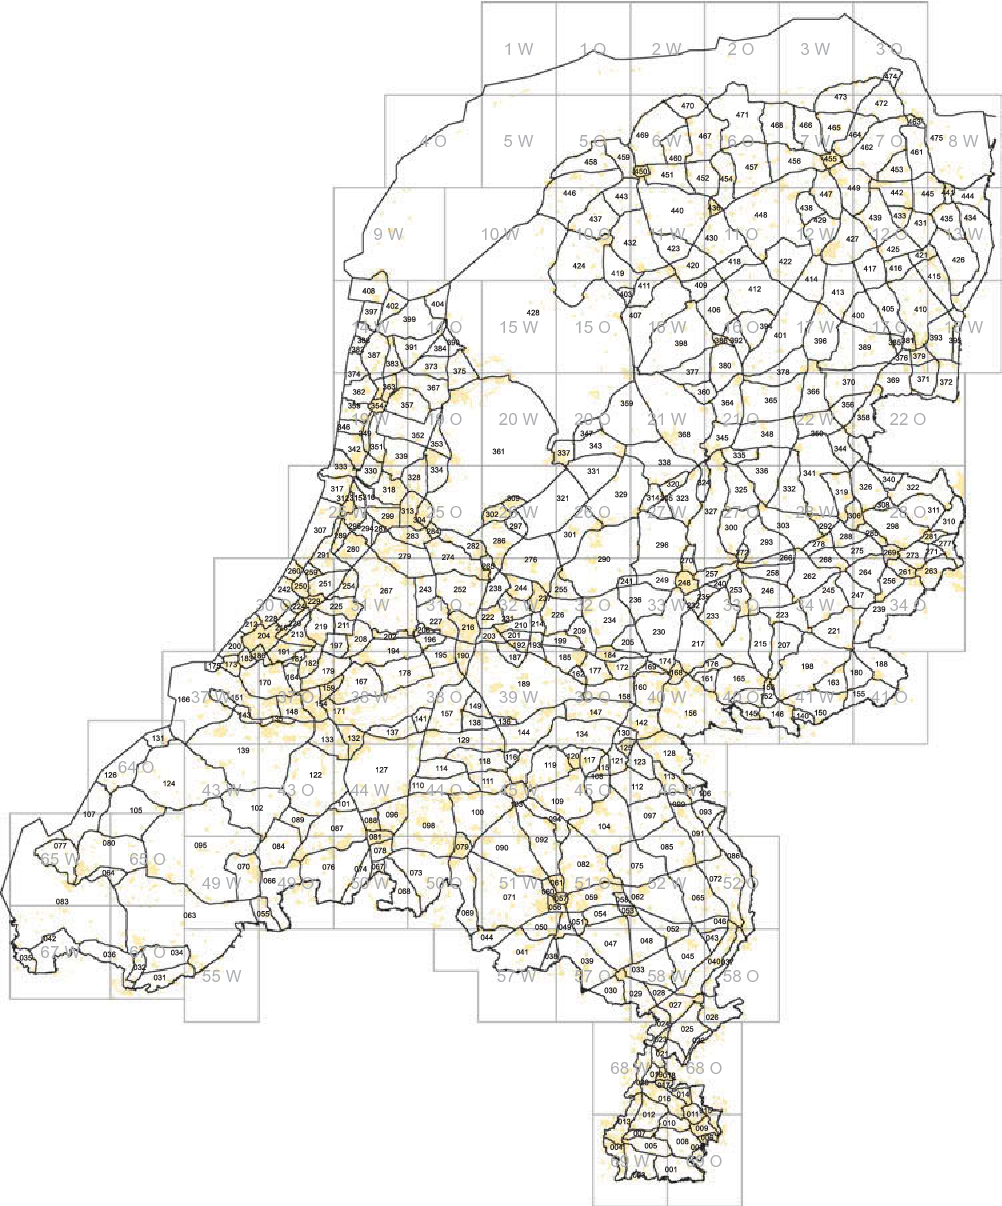 Figure 12. Partitioning of the Netherlands to enable automated generalization of a seamless map.